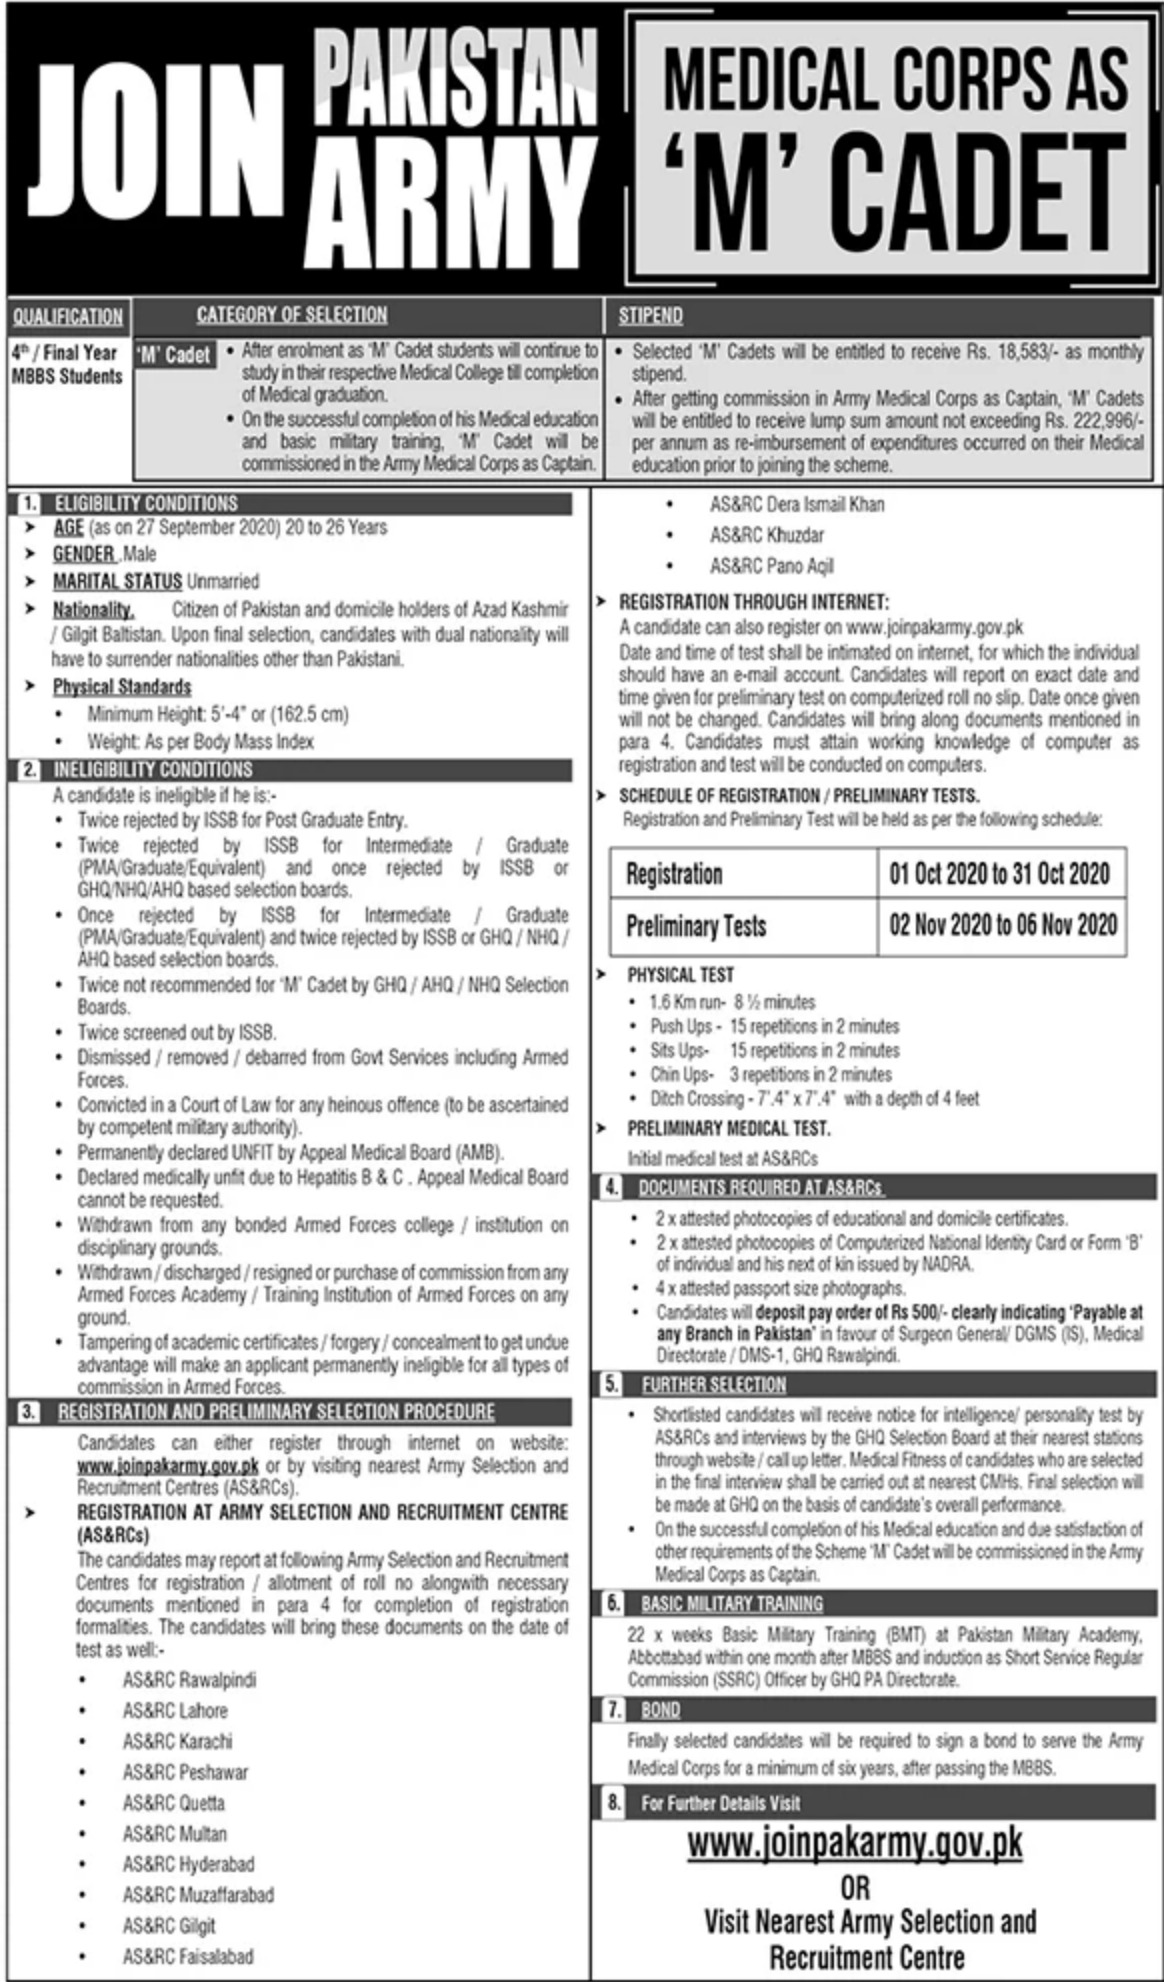 Pakistan Army Medical Corps Jobs as M Cadet September 2020